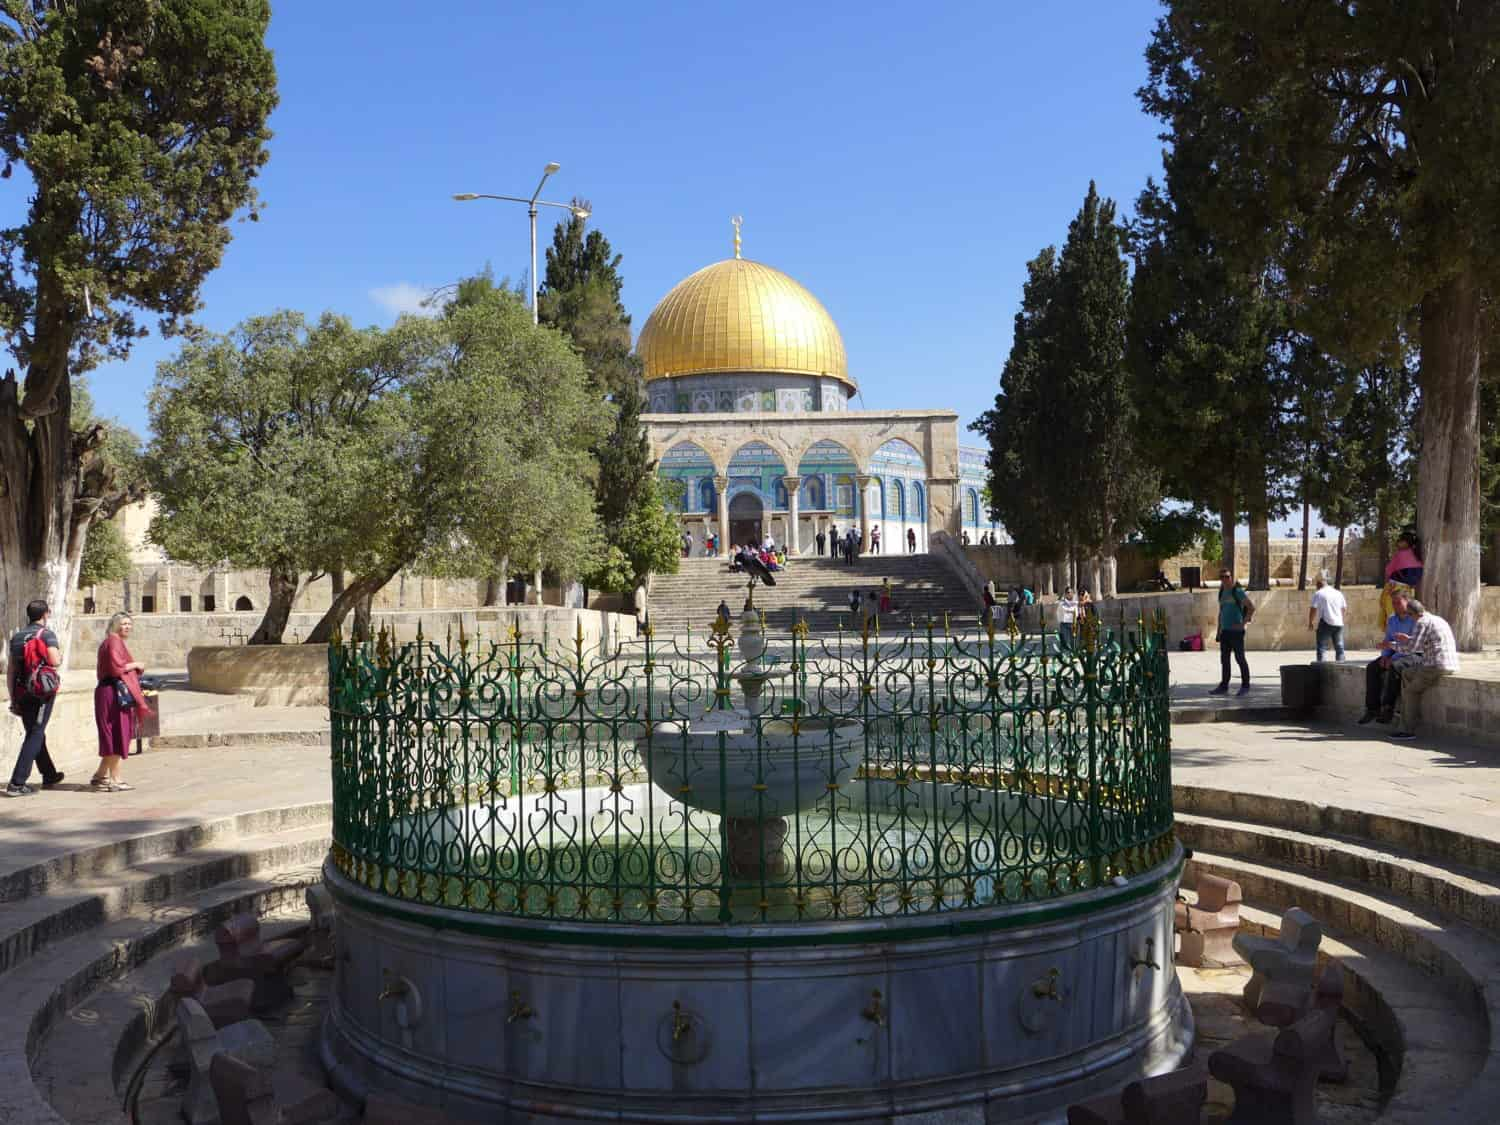 Visiting the Temple Mount & Dome of the Rock is a must in Jerusalem | How to make the most of a short visit to this ancient city, Jerusalem itinerary ideas, Jerusalem trip planning, what to do in Israel, a day in Jerusalem #jerusalem #israel #holyland